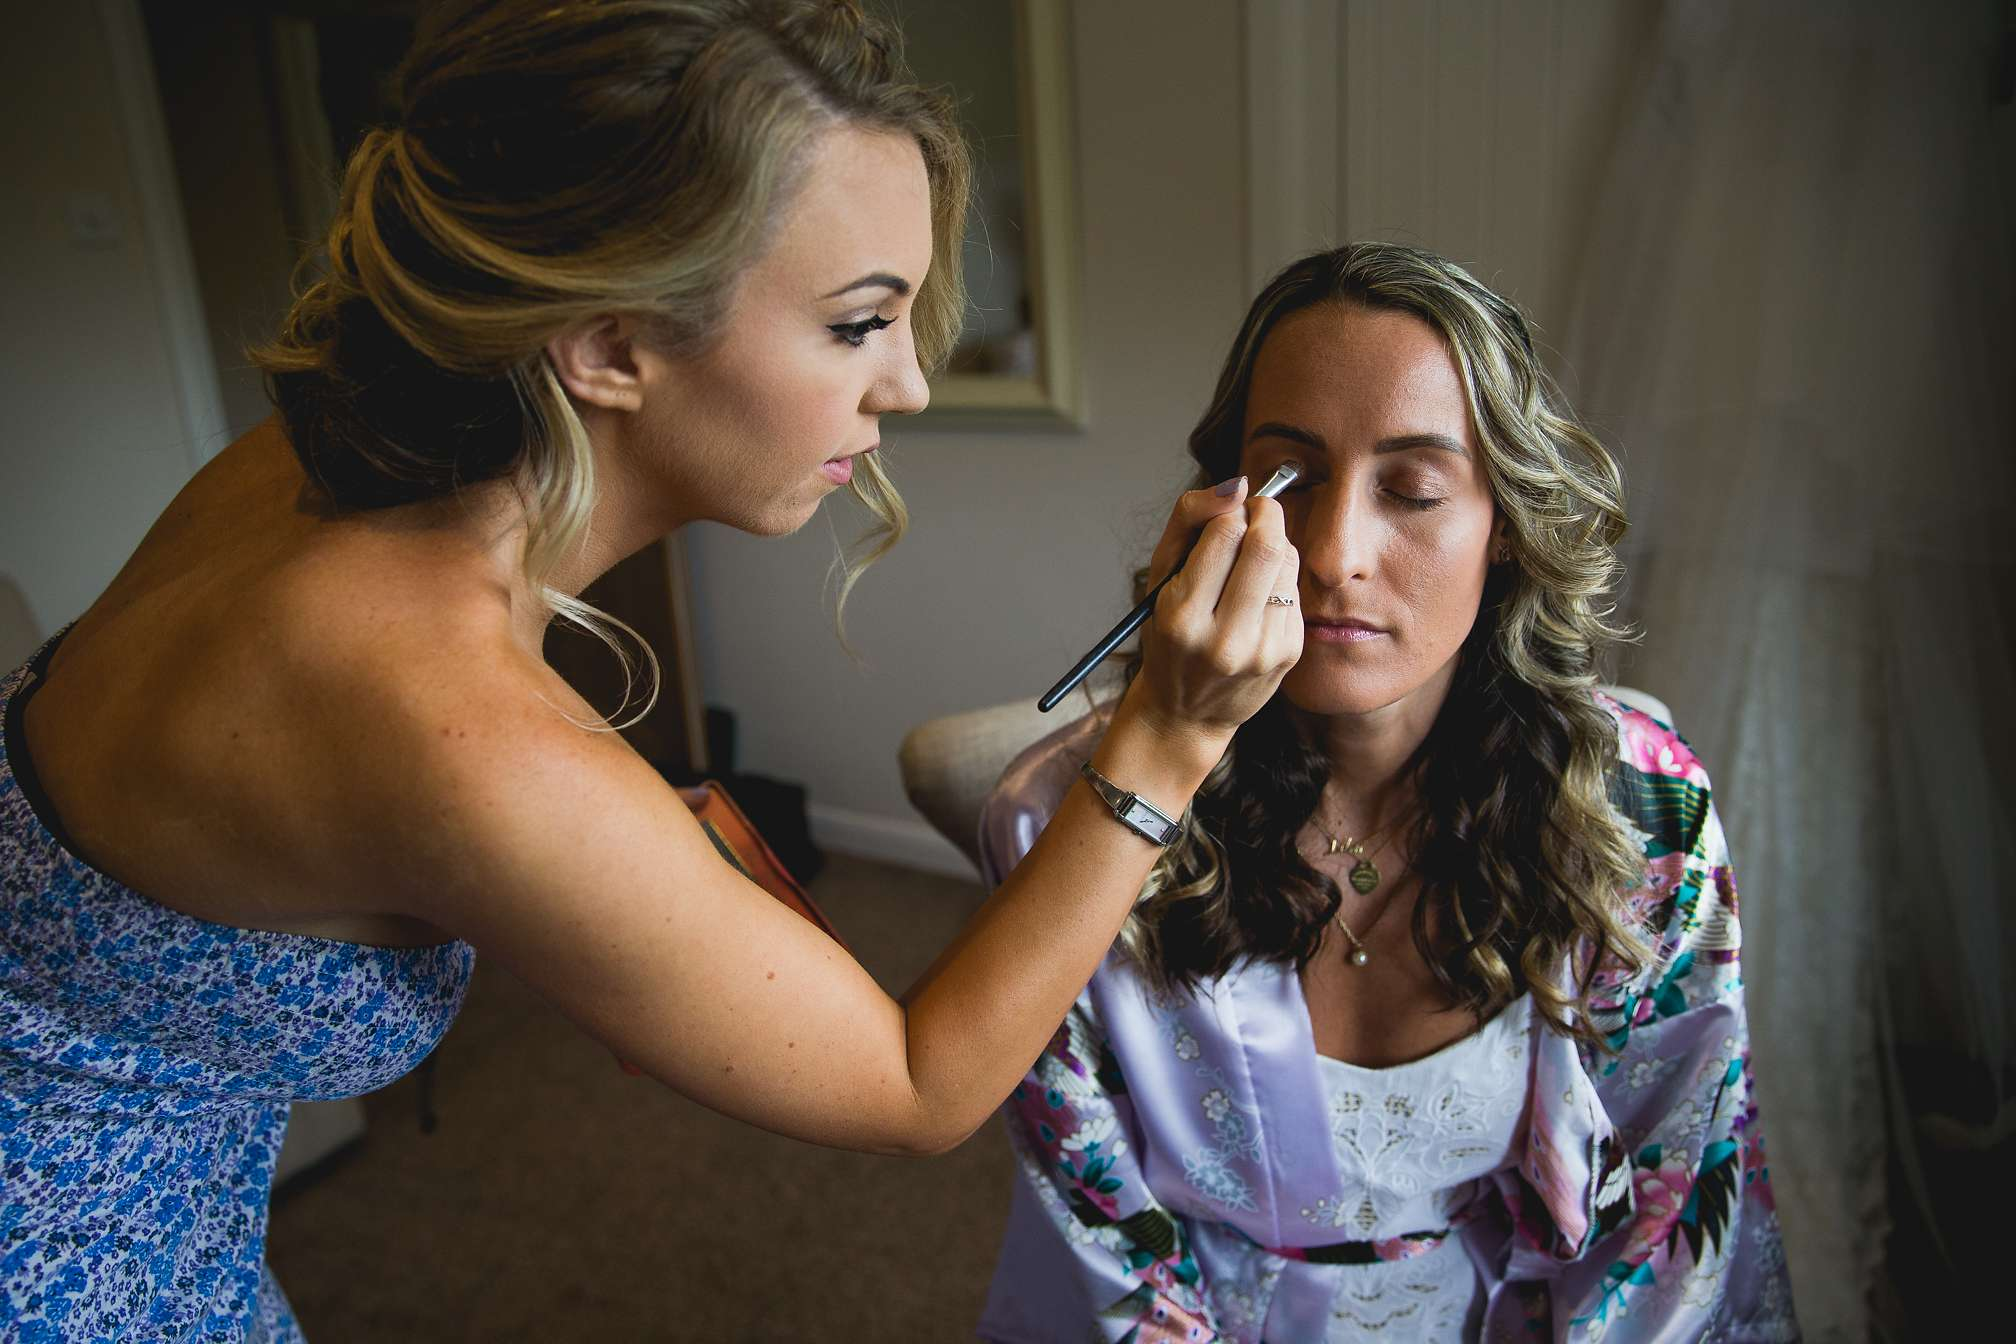 The bridesmaids helping each other out with makeup